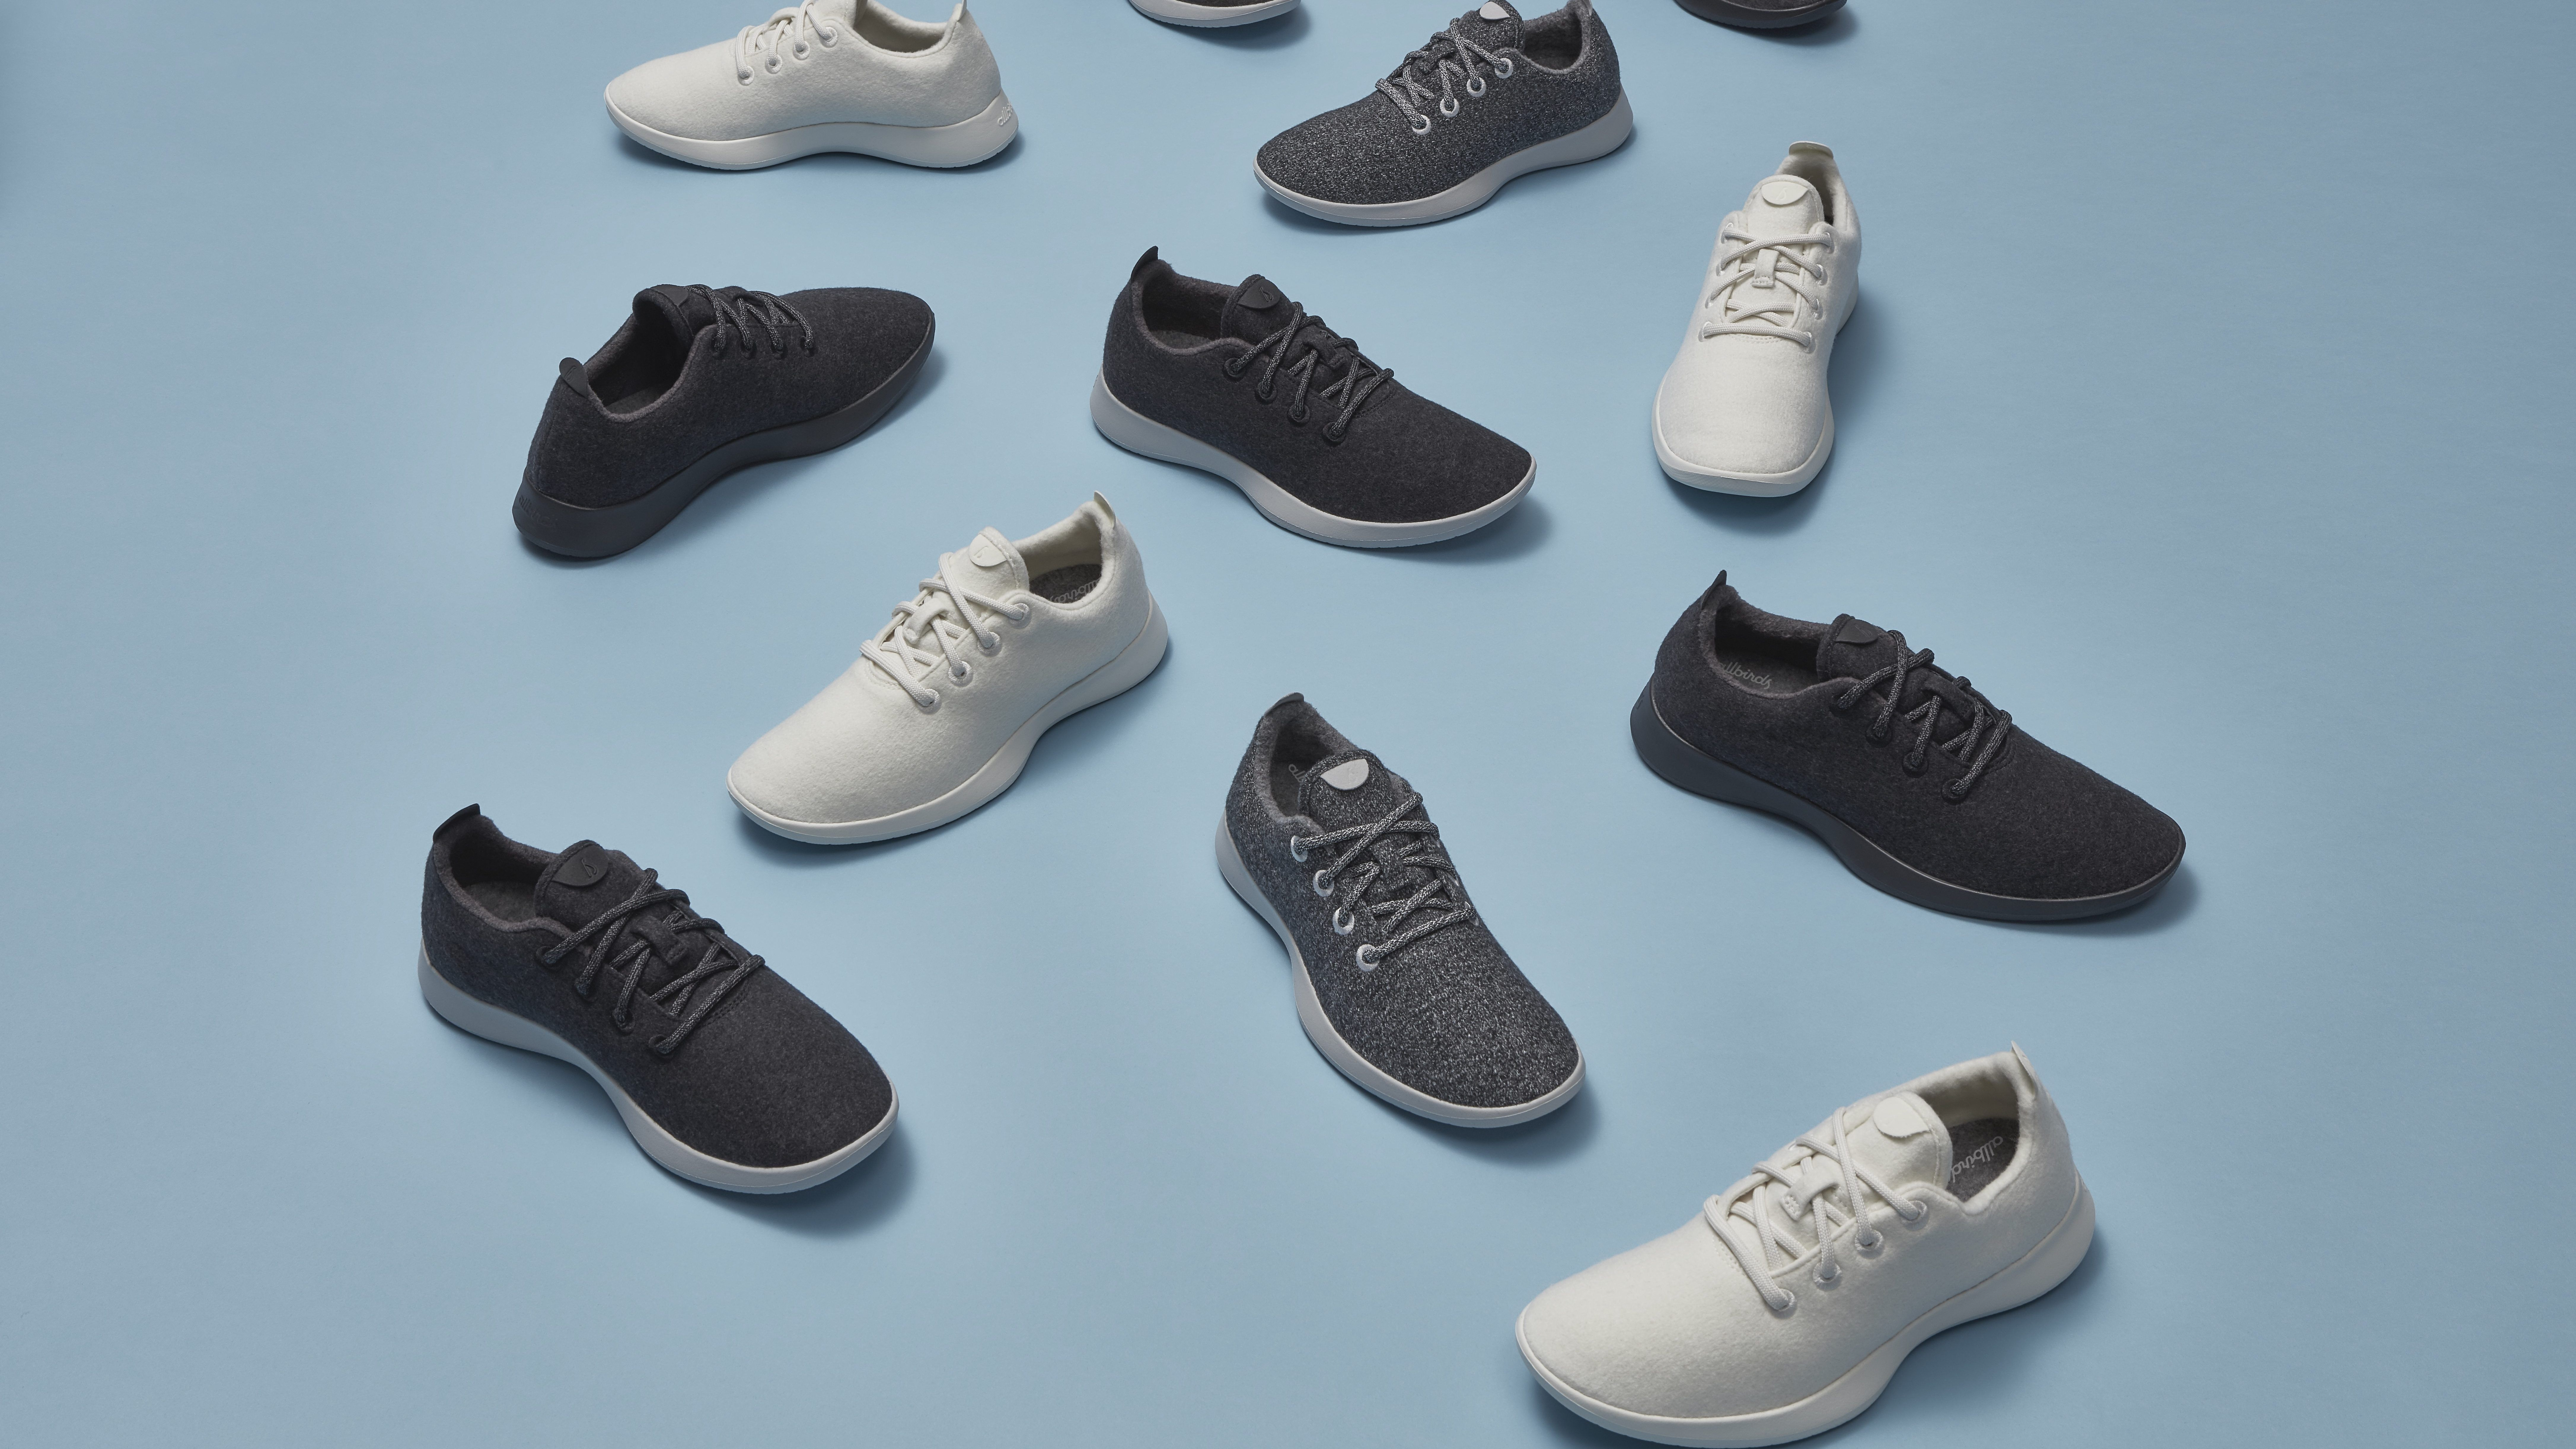 An array of Allbirds simple sneakers against a muted background